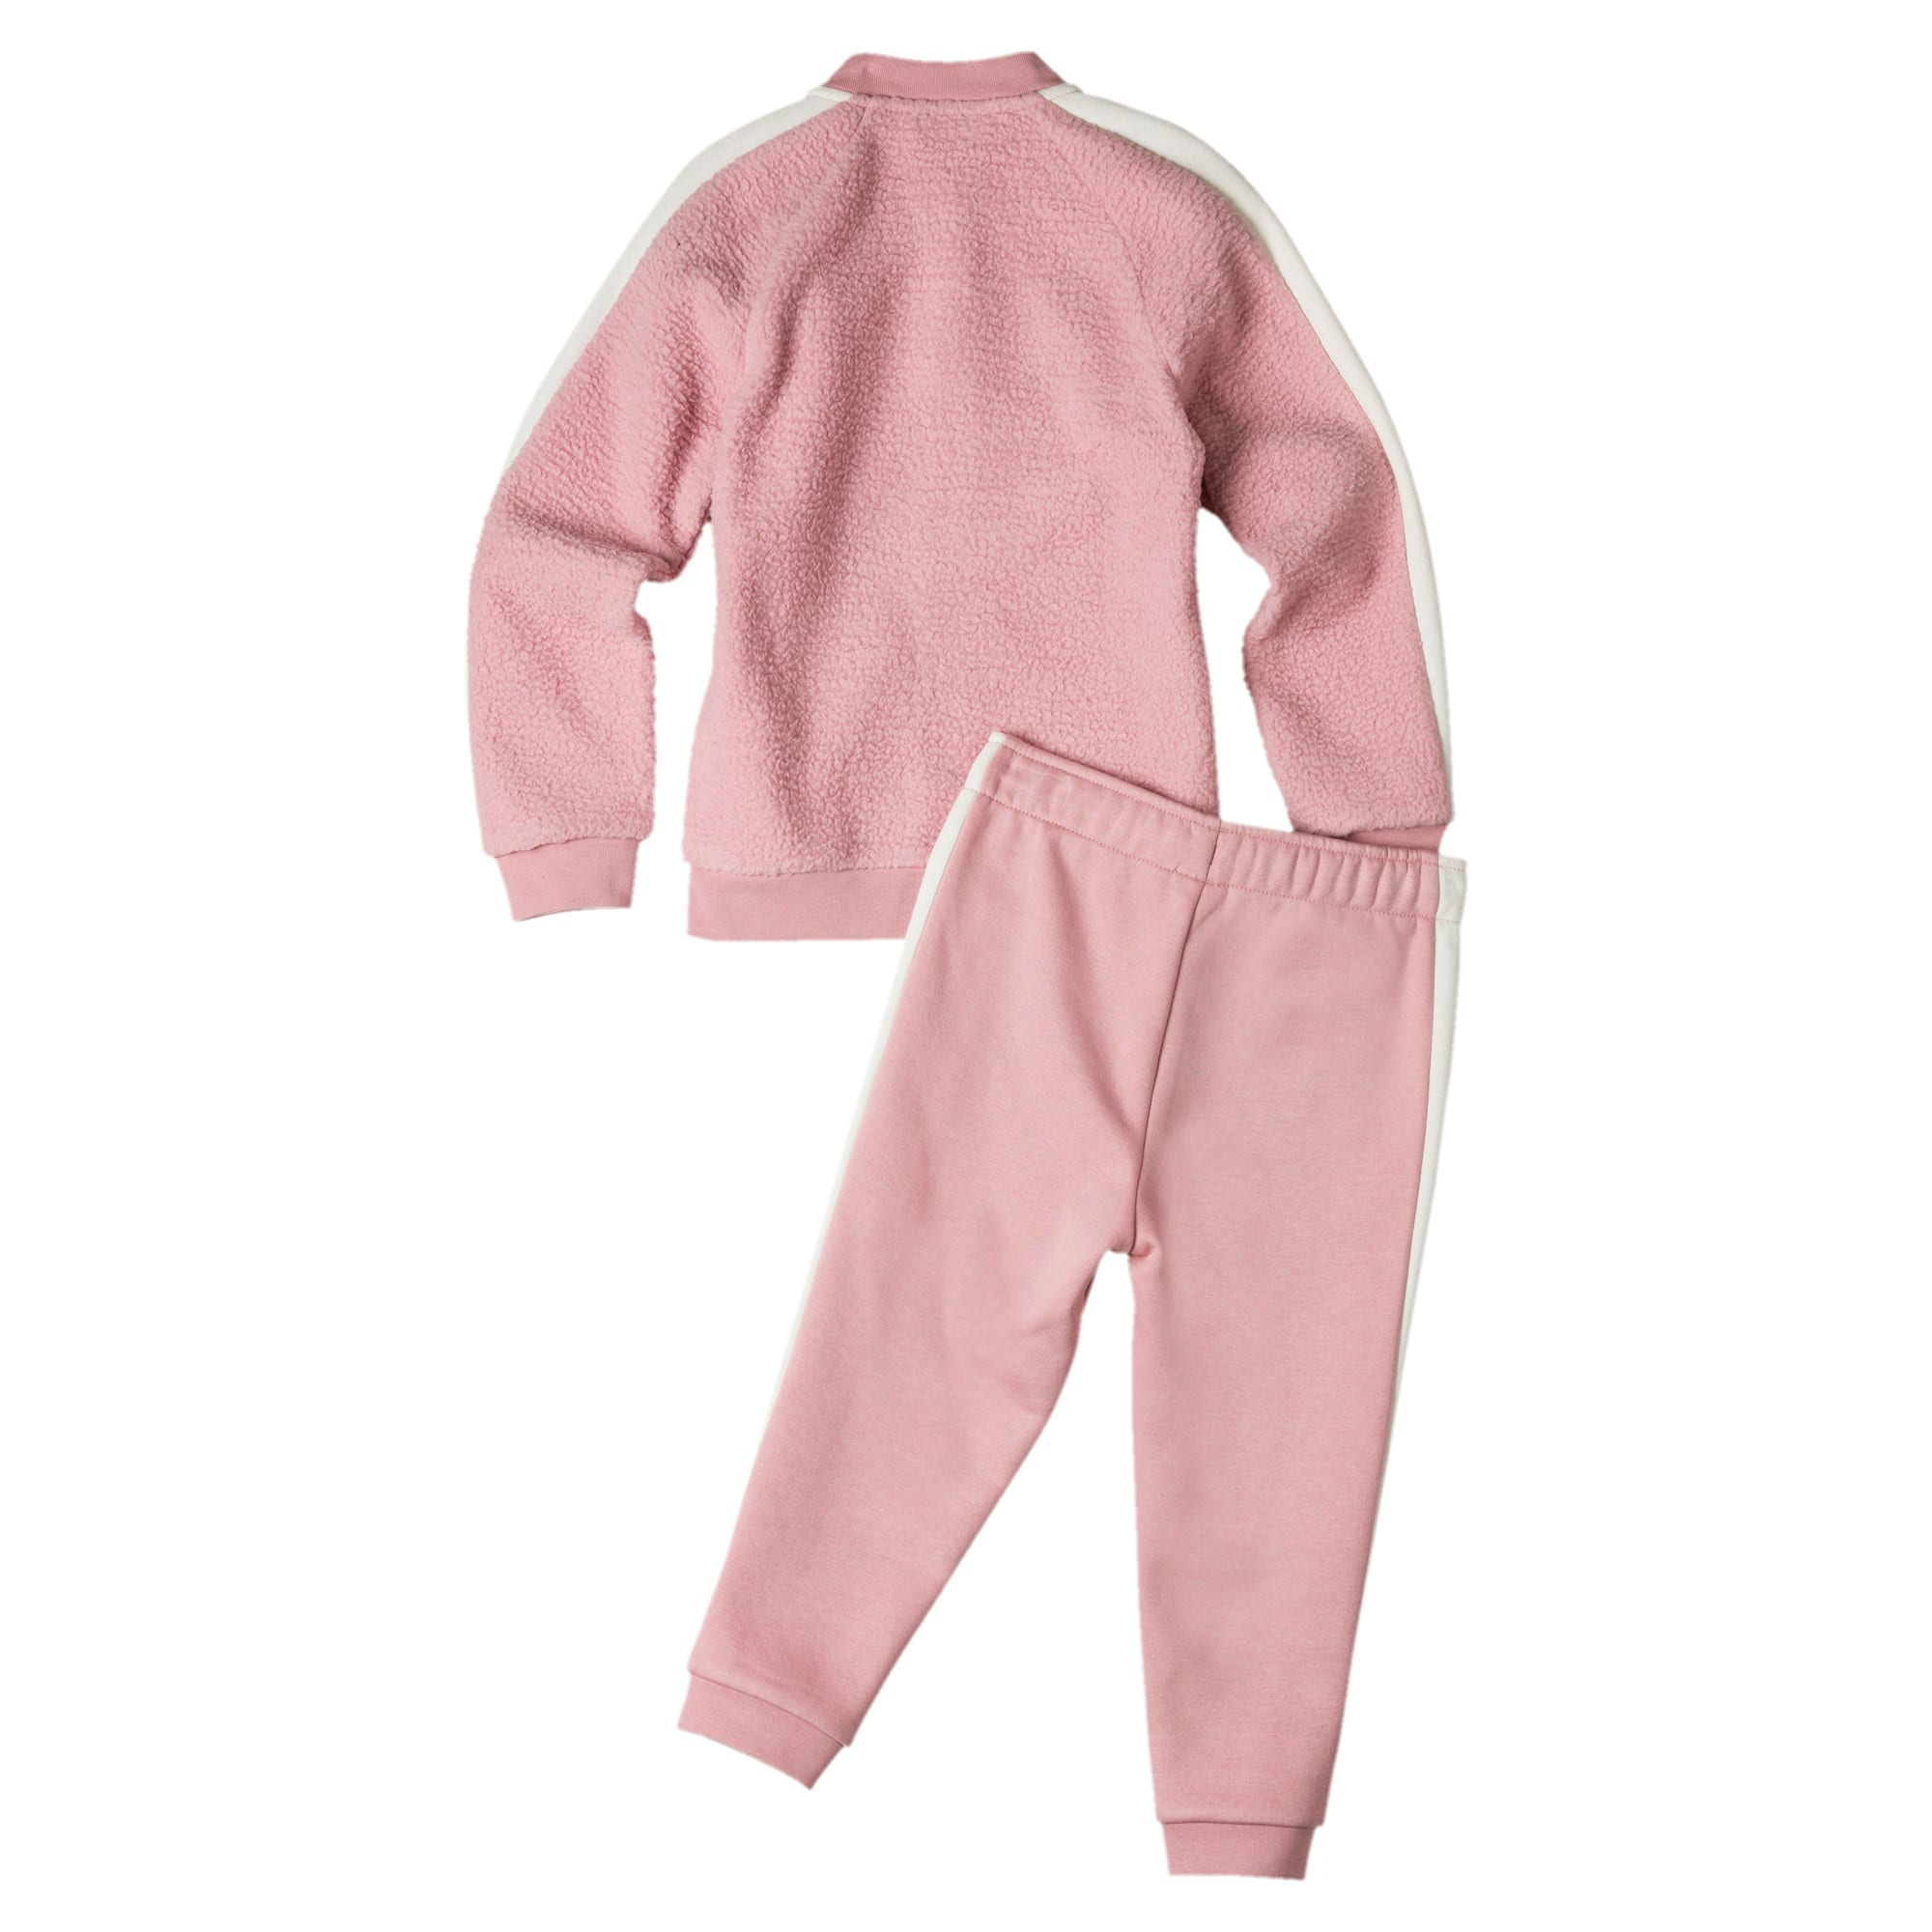 Thumbnail 2 of Monster Infant + Toddler Two-Piece Set, Bridal Rose, medium